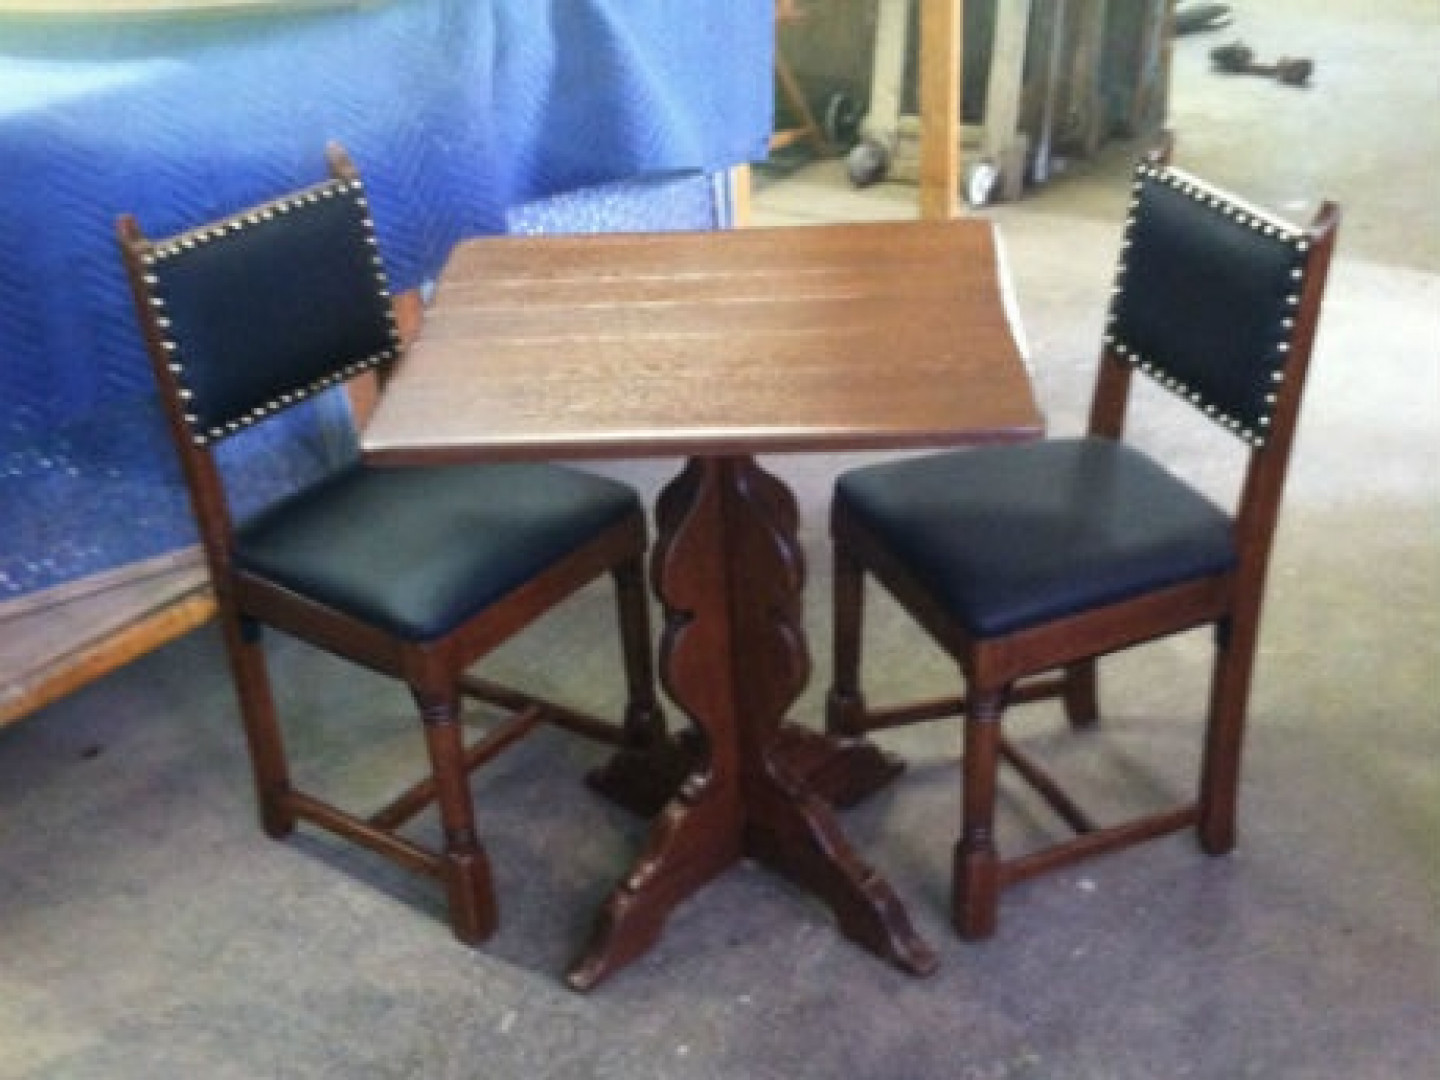 furniture repair services Doylestown, PA